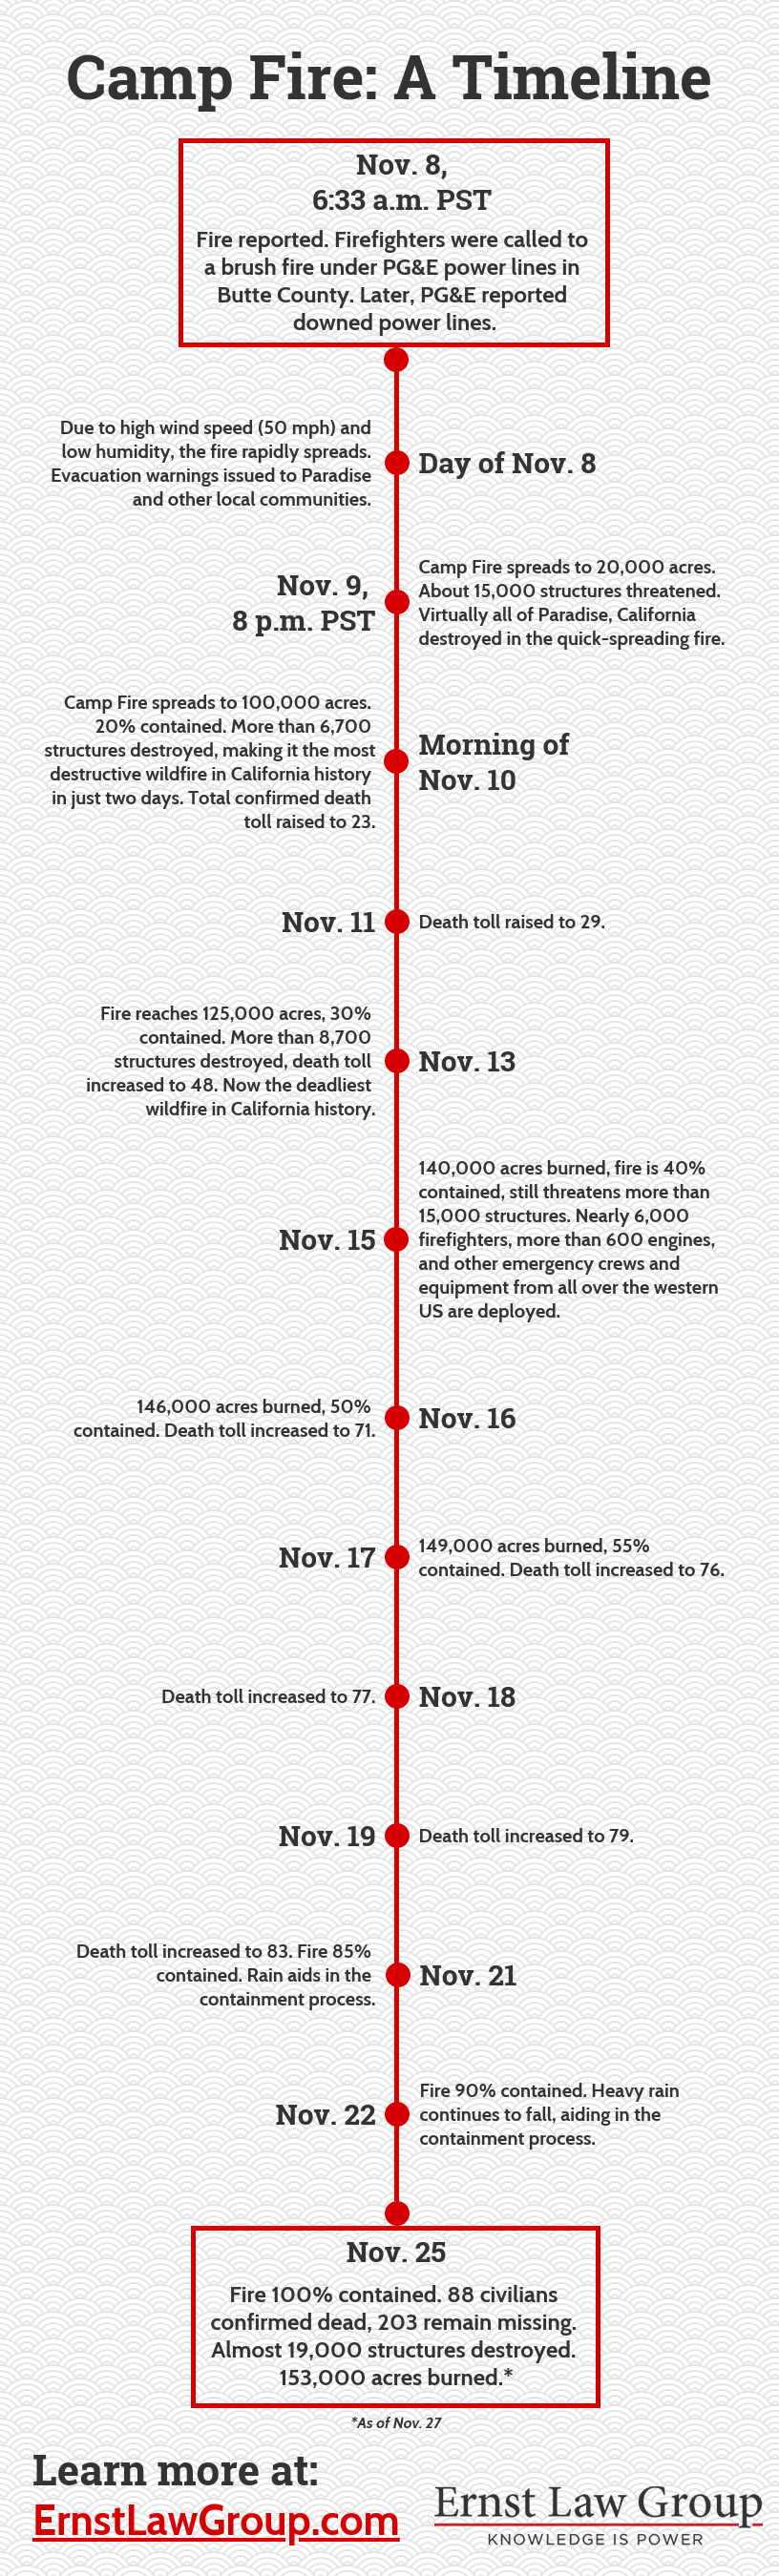 ernst Camp Fire A Timeline infographic